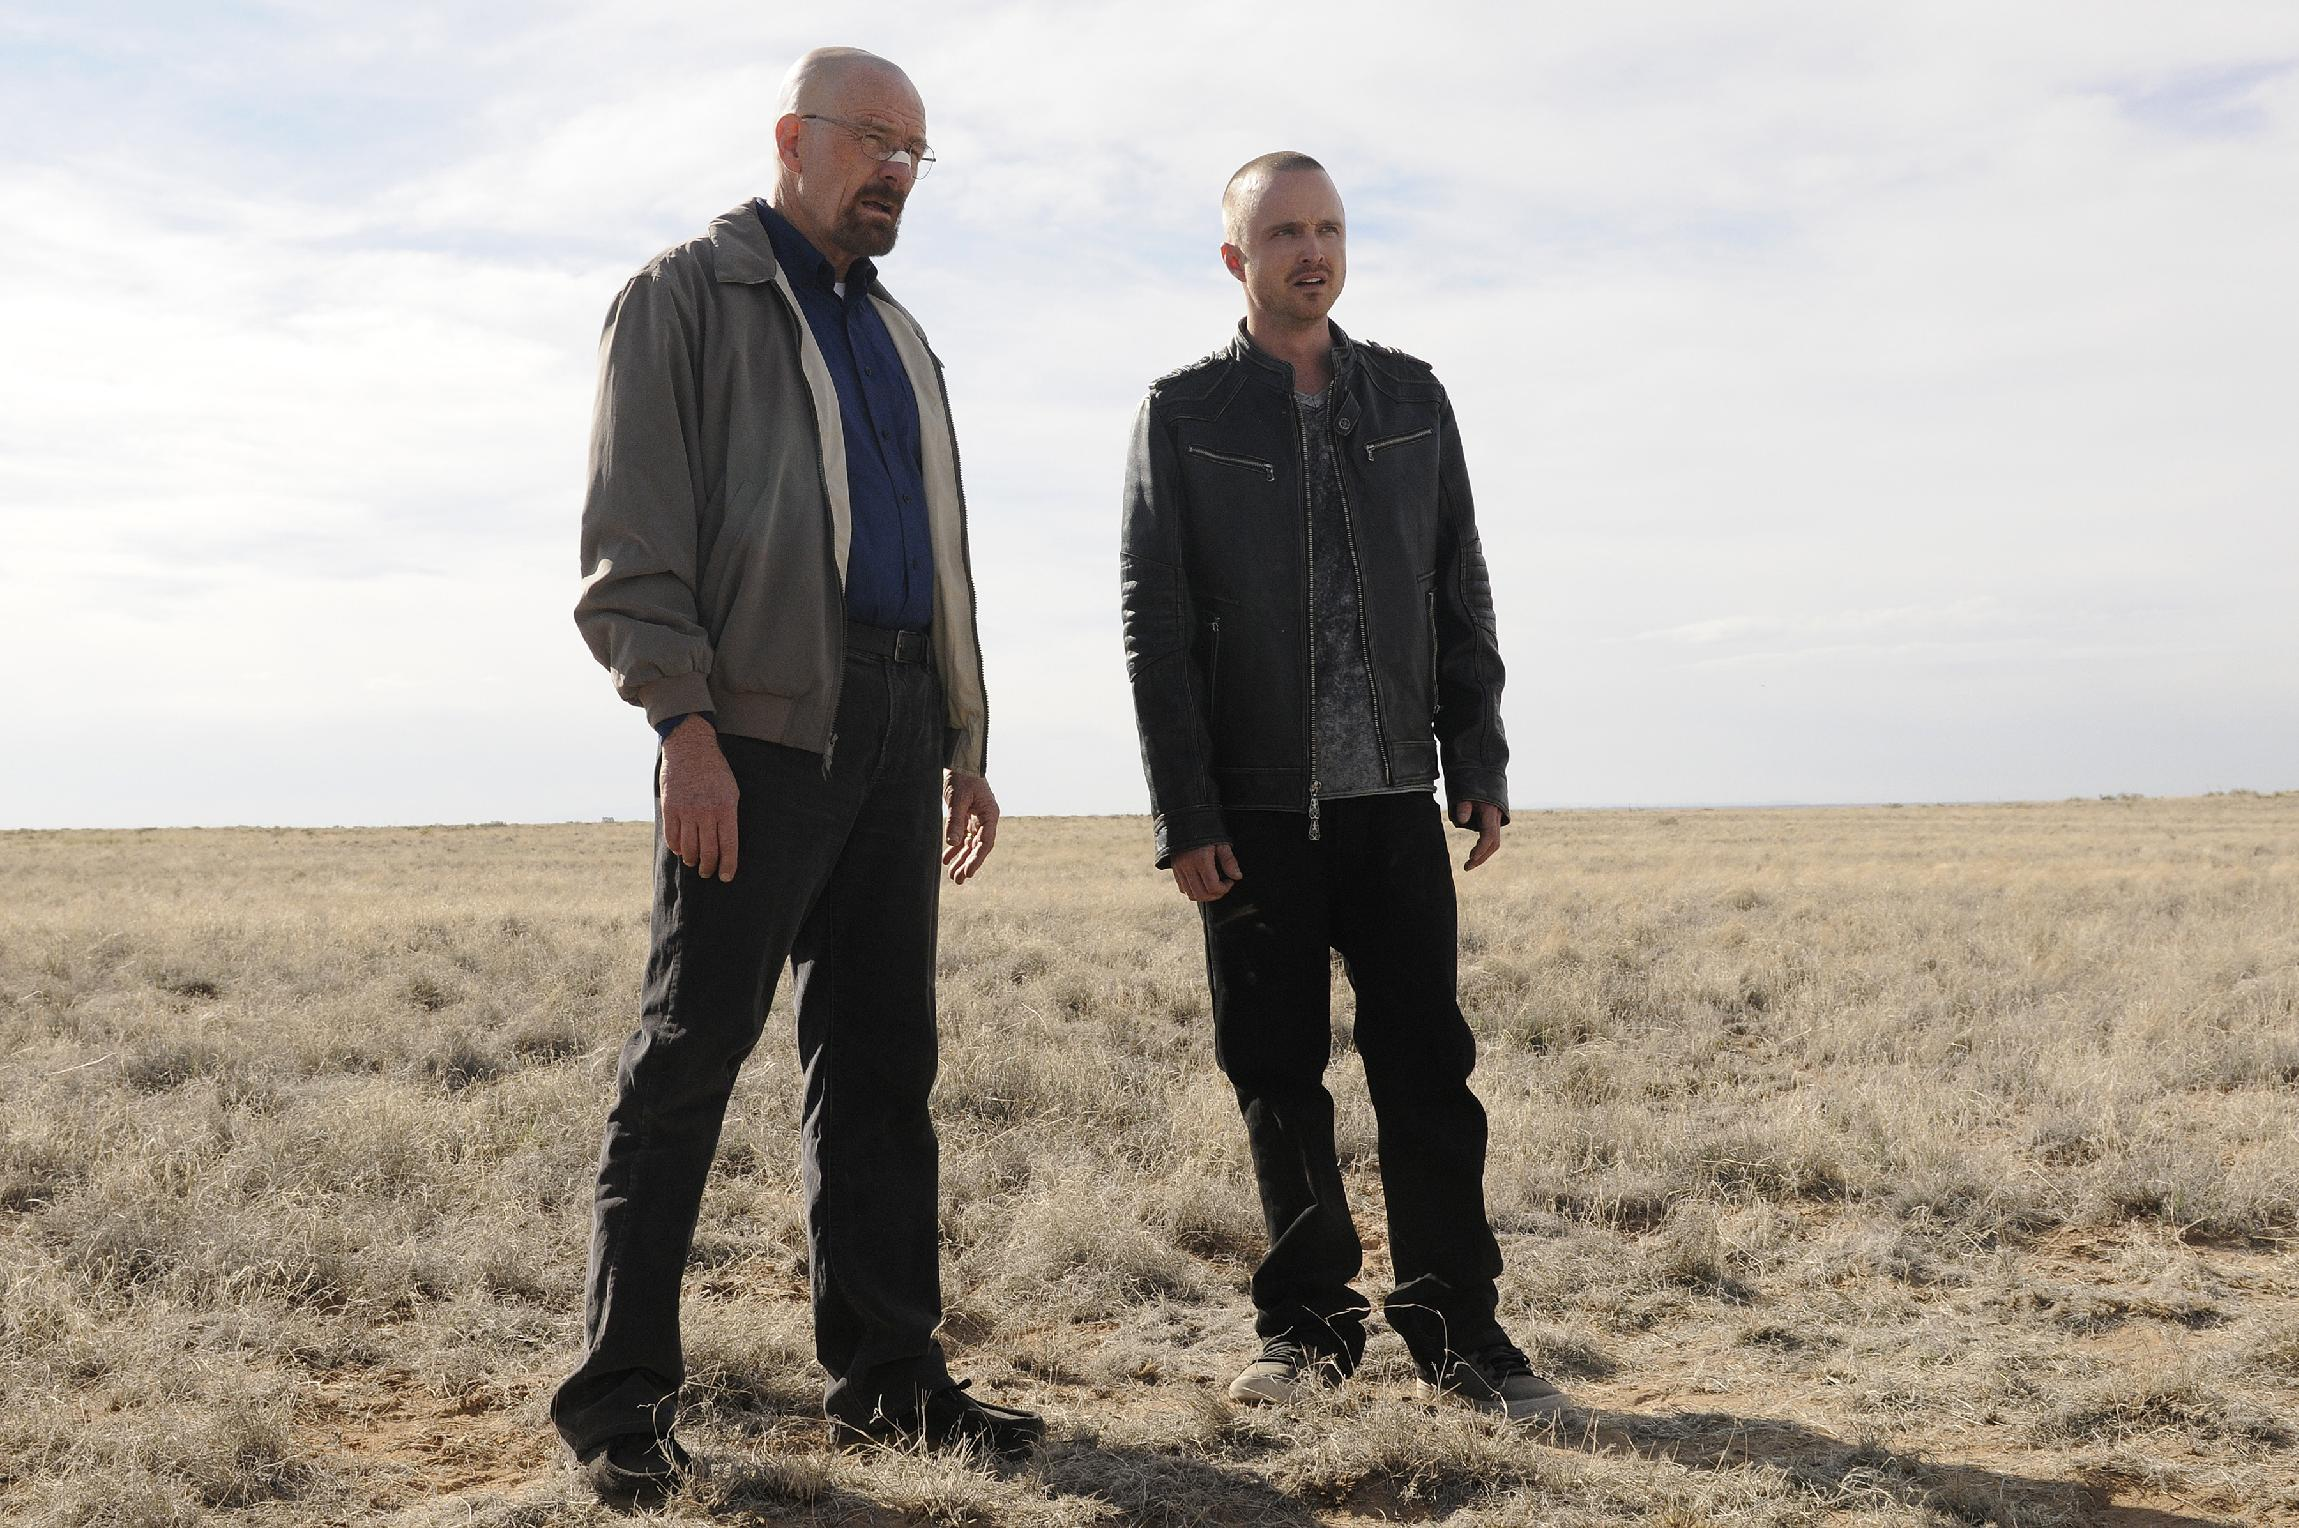 'Breaking Bad': Four surprising facts you never knew about Vince Gilligan's show